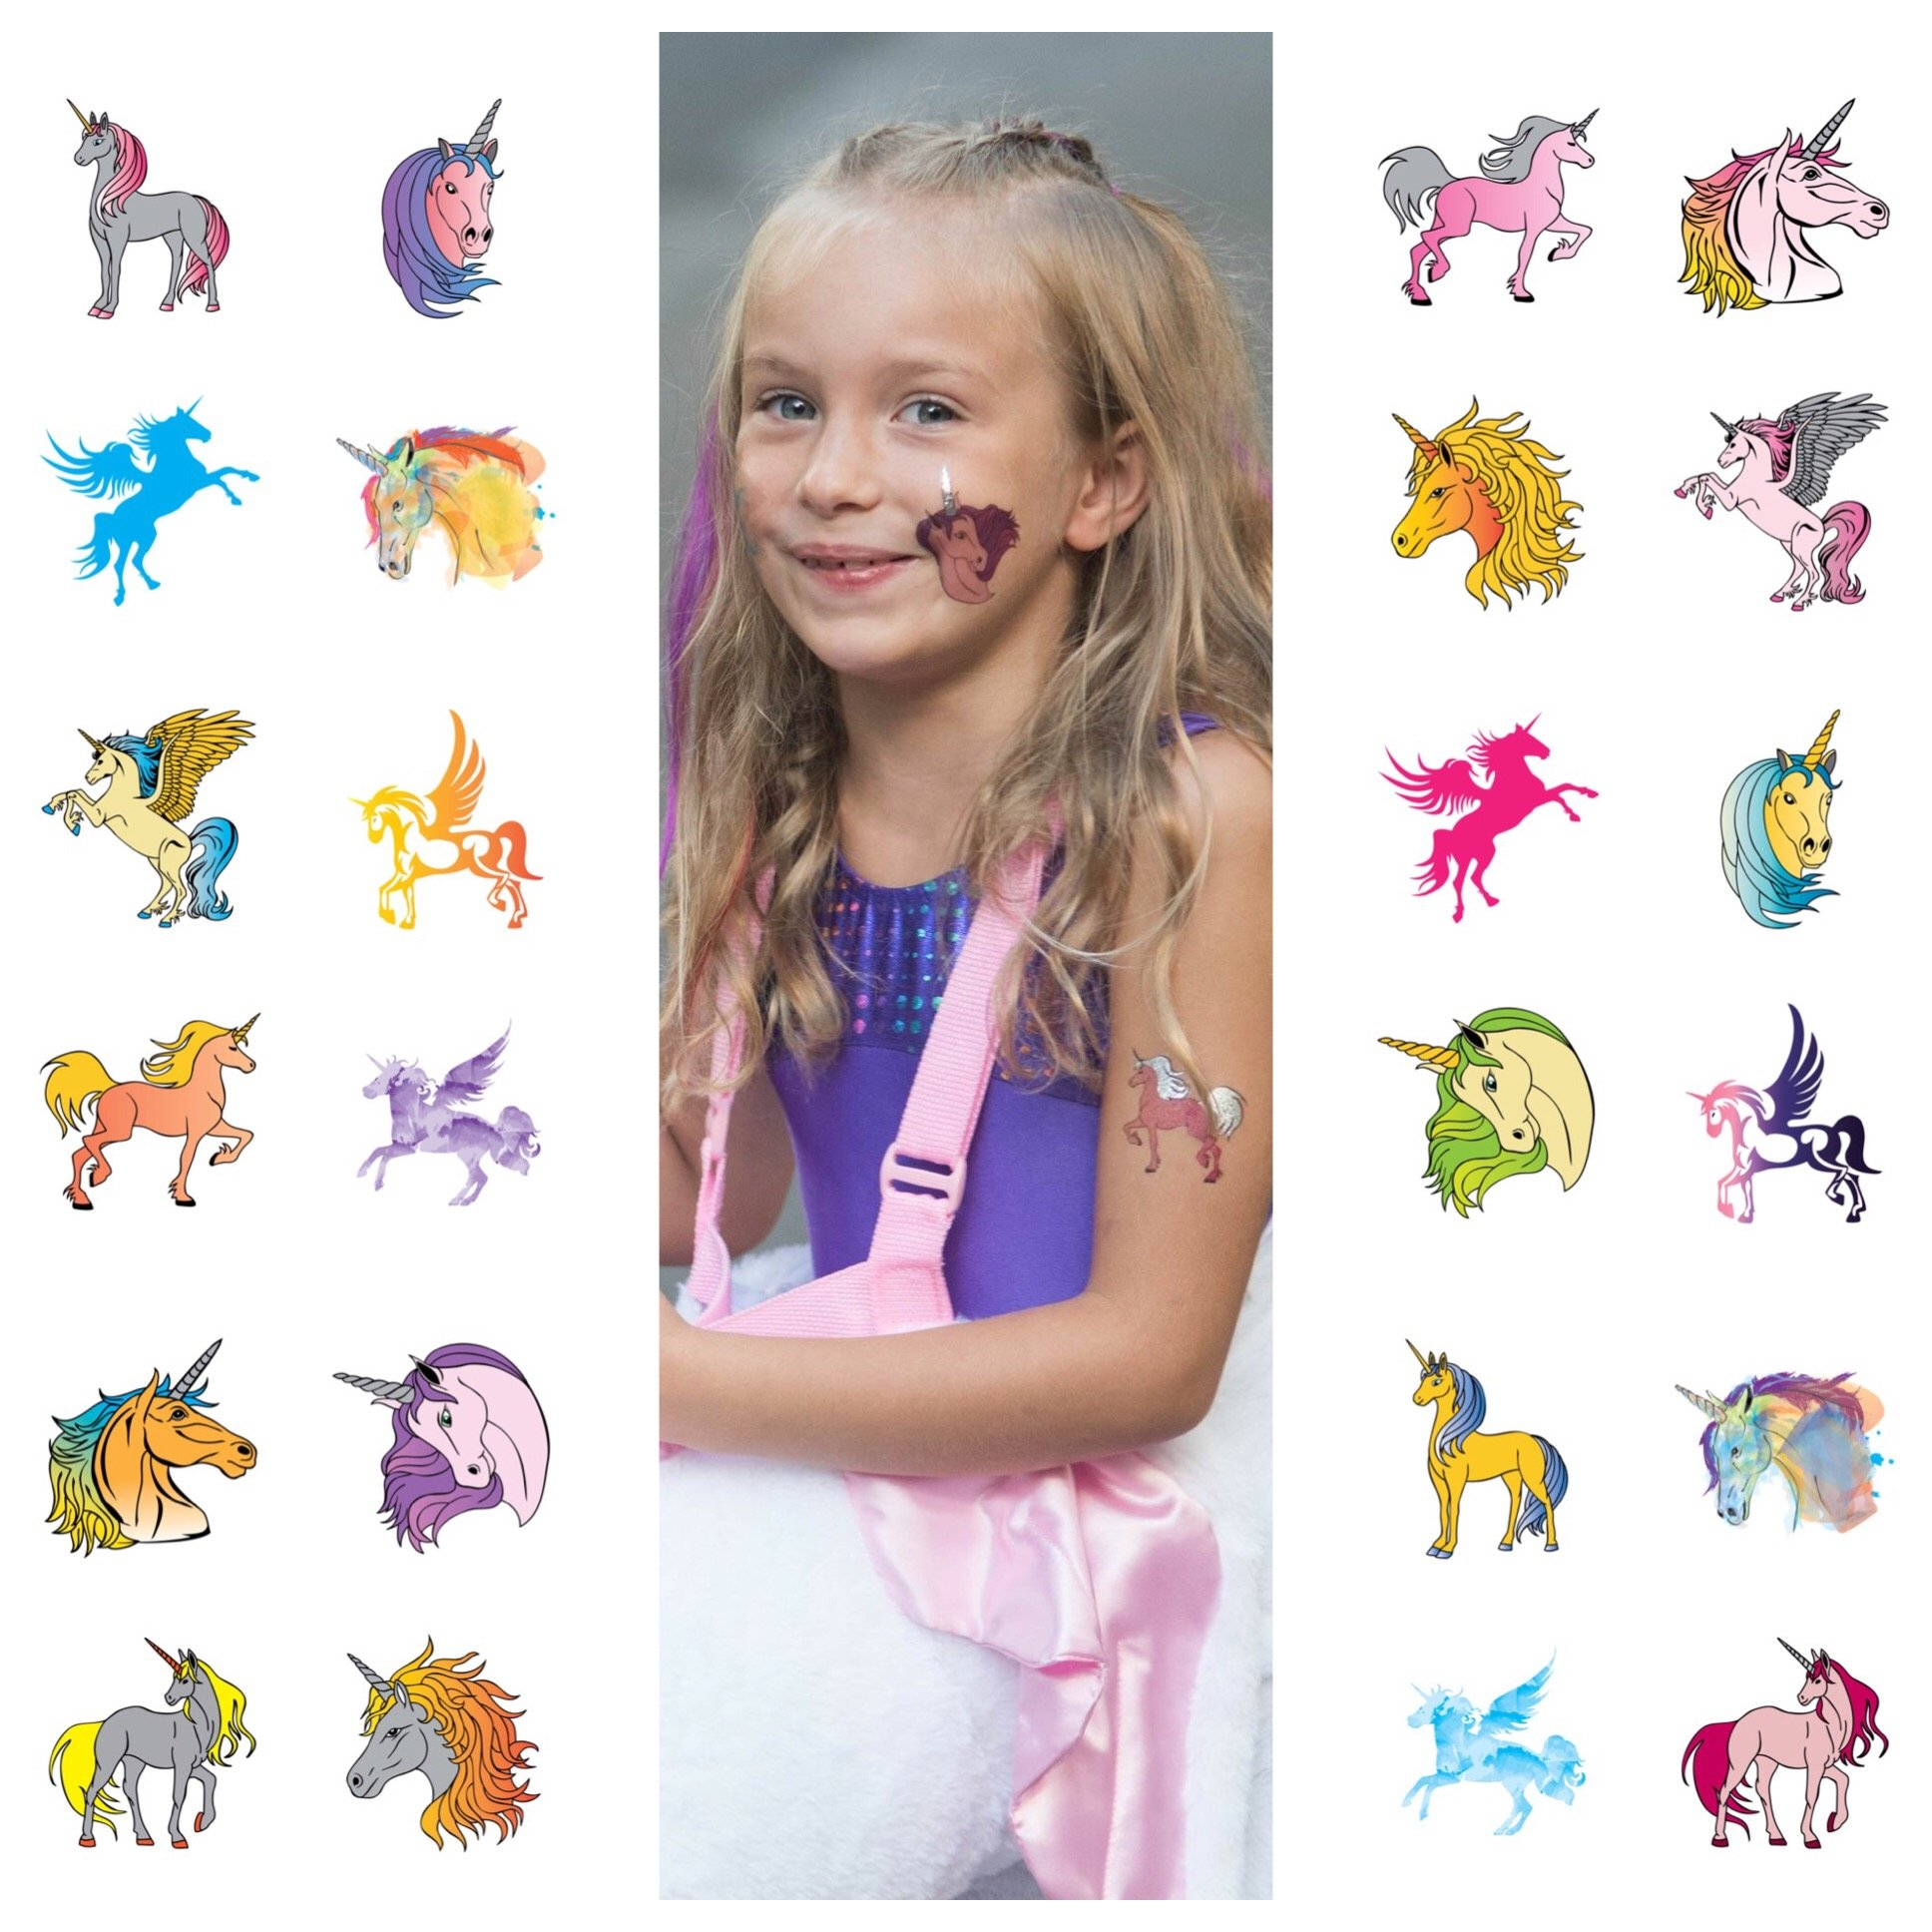 John & Judy 24 Unicorn Temporary Tattoos for Girls Best for Unicorn Party Supplies Party Favors and Unicorn Birthdays Beautiful Metallic Unicorn and Pegasus Tattoos